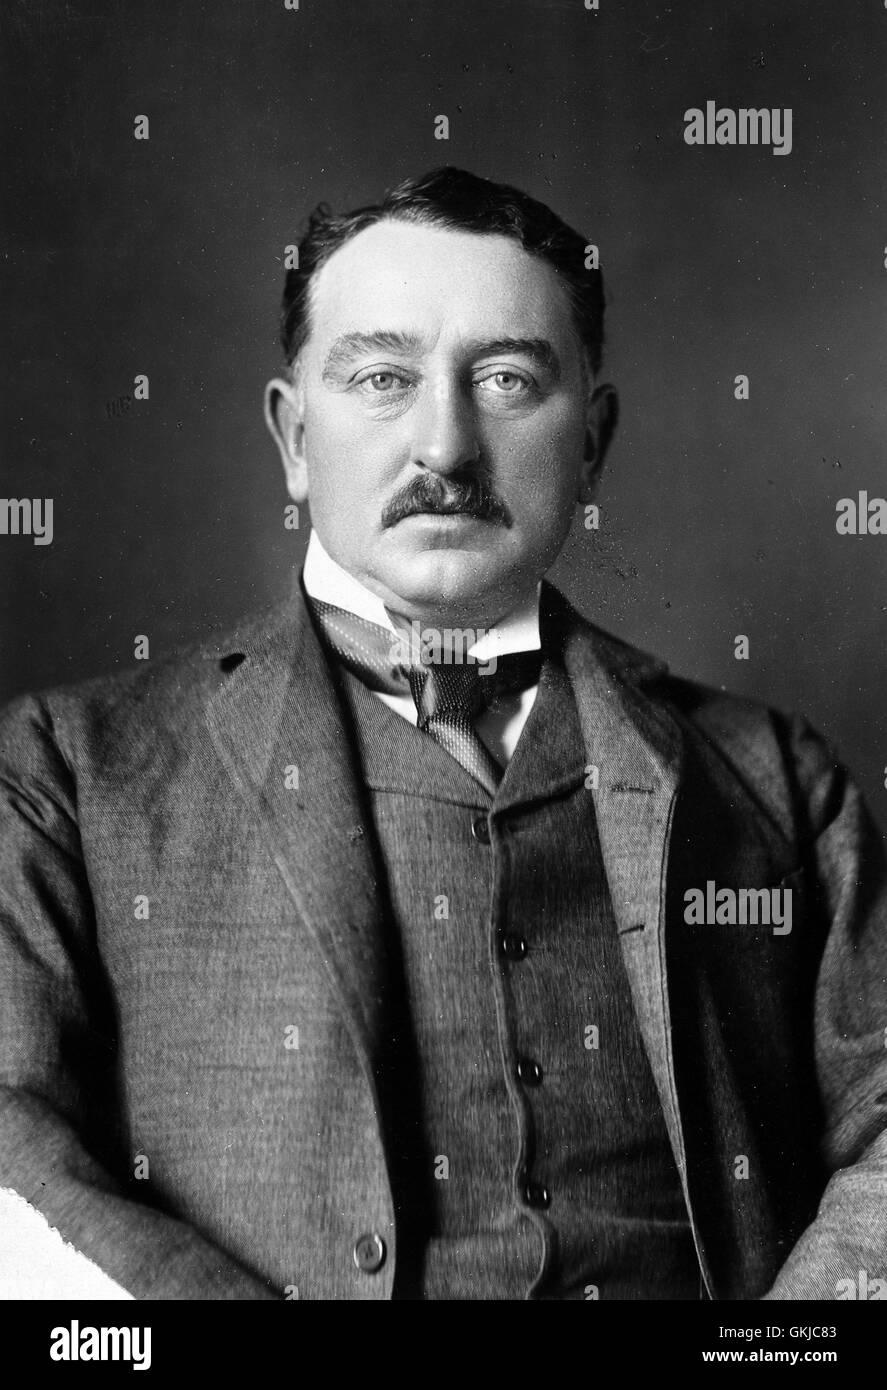 CECIL RHODES (1853- 1902) British entrepreneur and politician in South Africa, here about 1900 - Stock Image